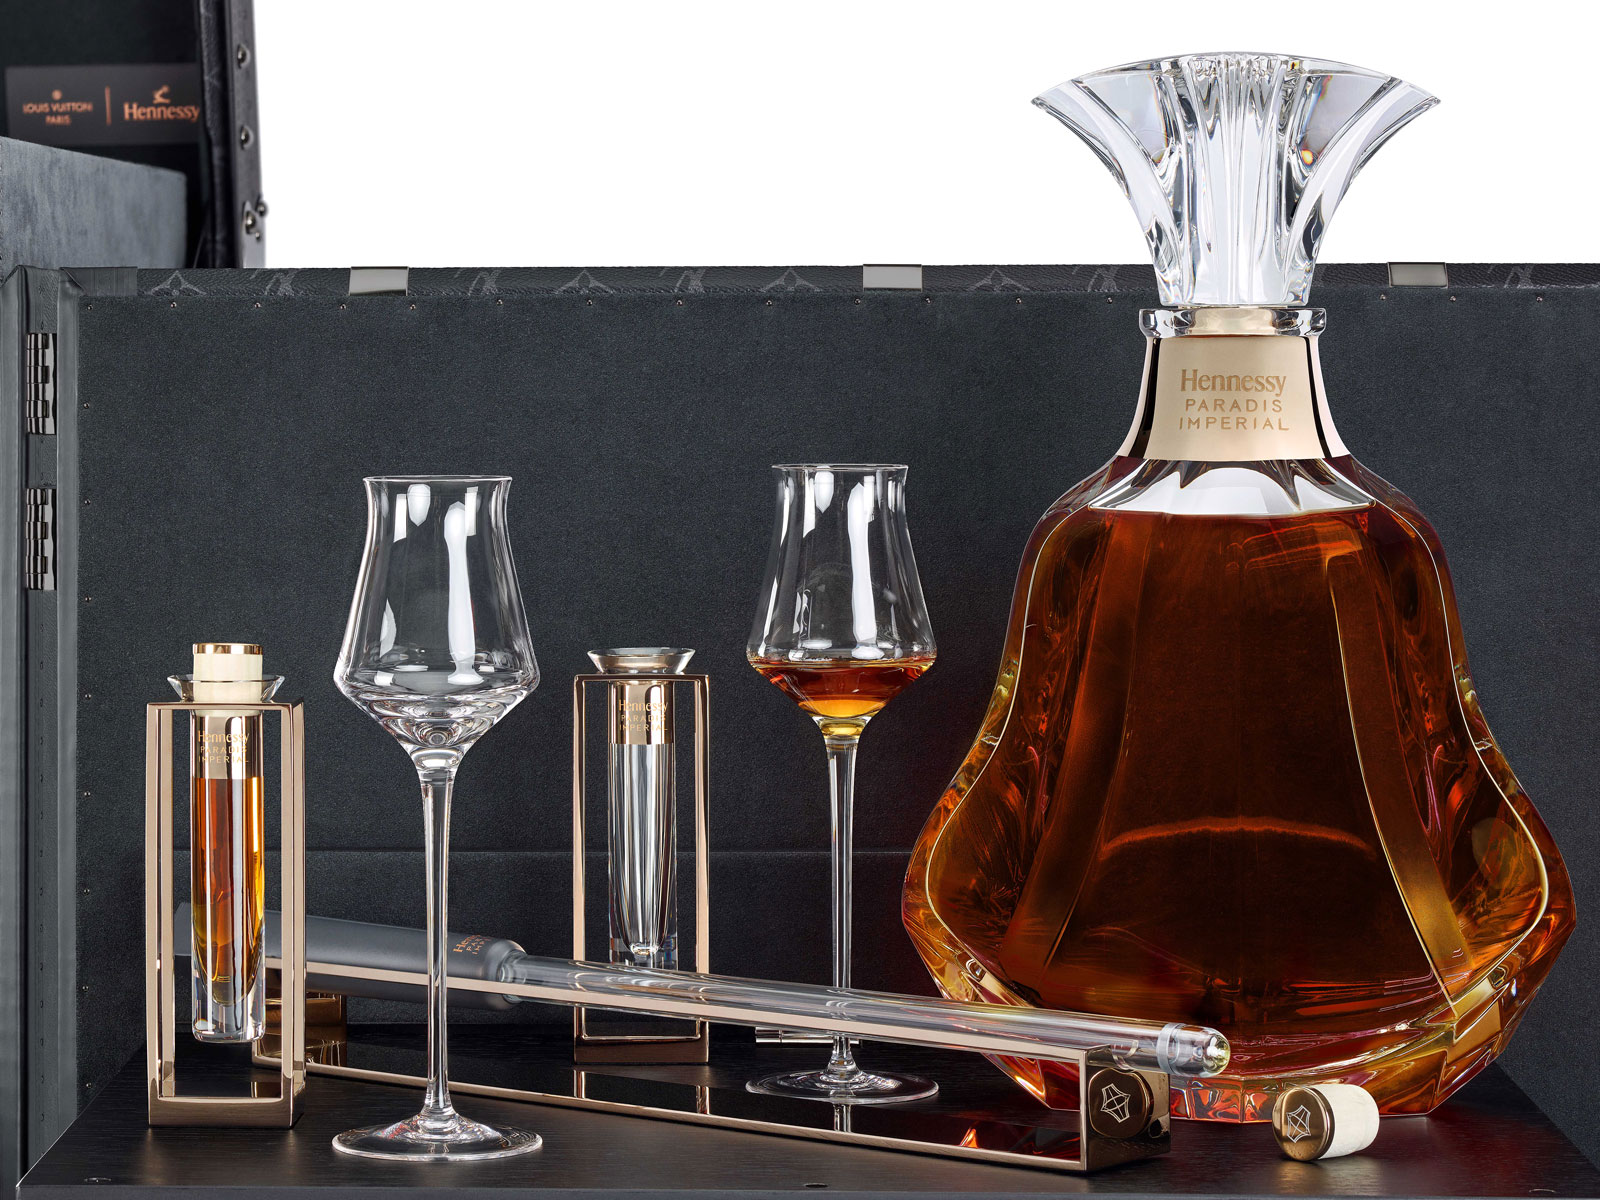 Hennessy Paradis Imperial Serving Ritual